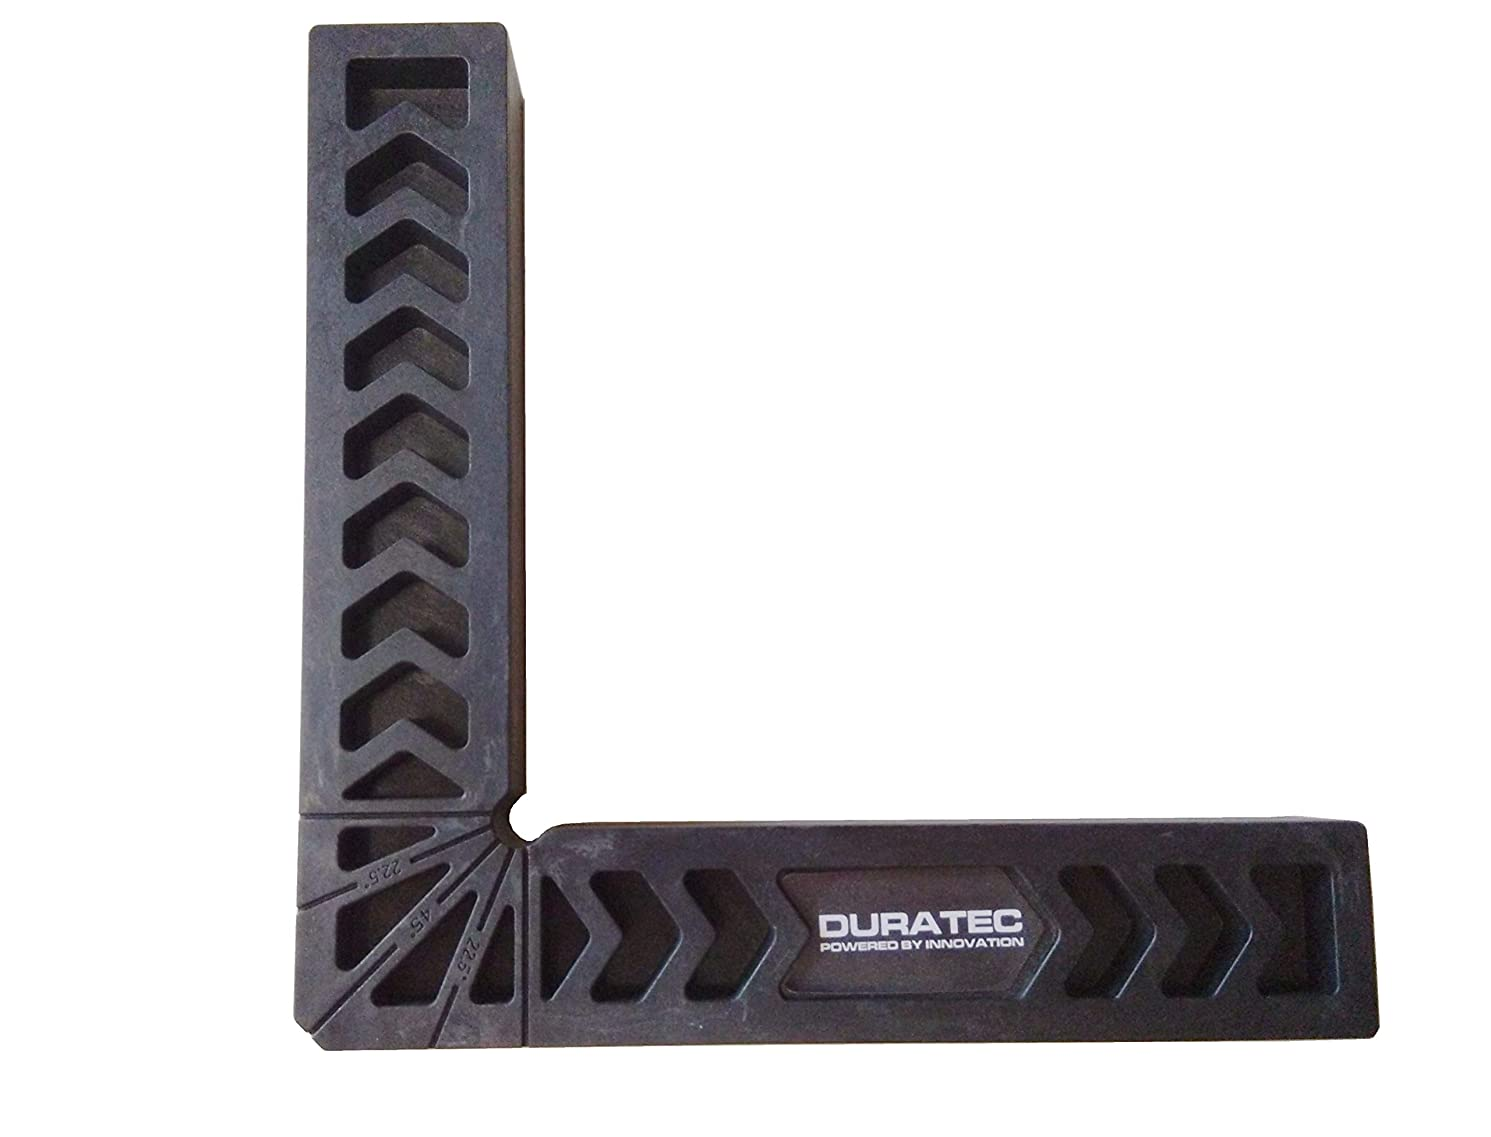 Duratec Positioning Squares, Woodworking Tool, Clamping 90 Degree Angles for Picture Frames, Boxes, Cabinets or Drawers.Pack of 1PC (8 Inch, Black)